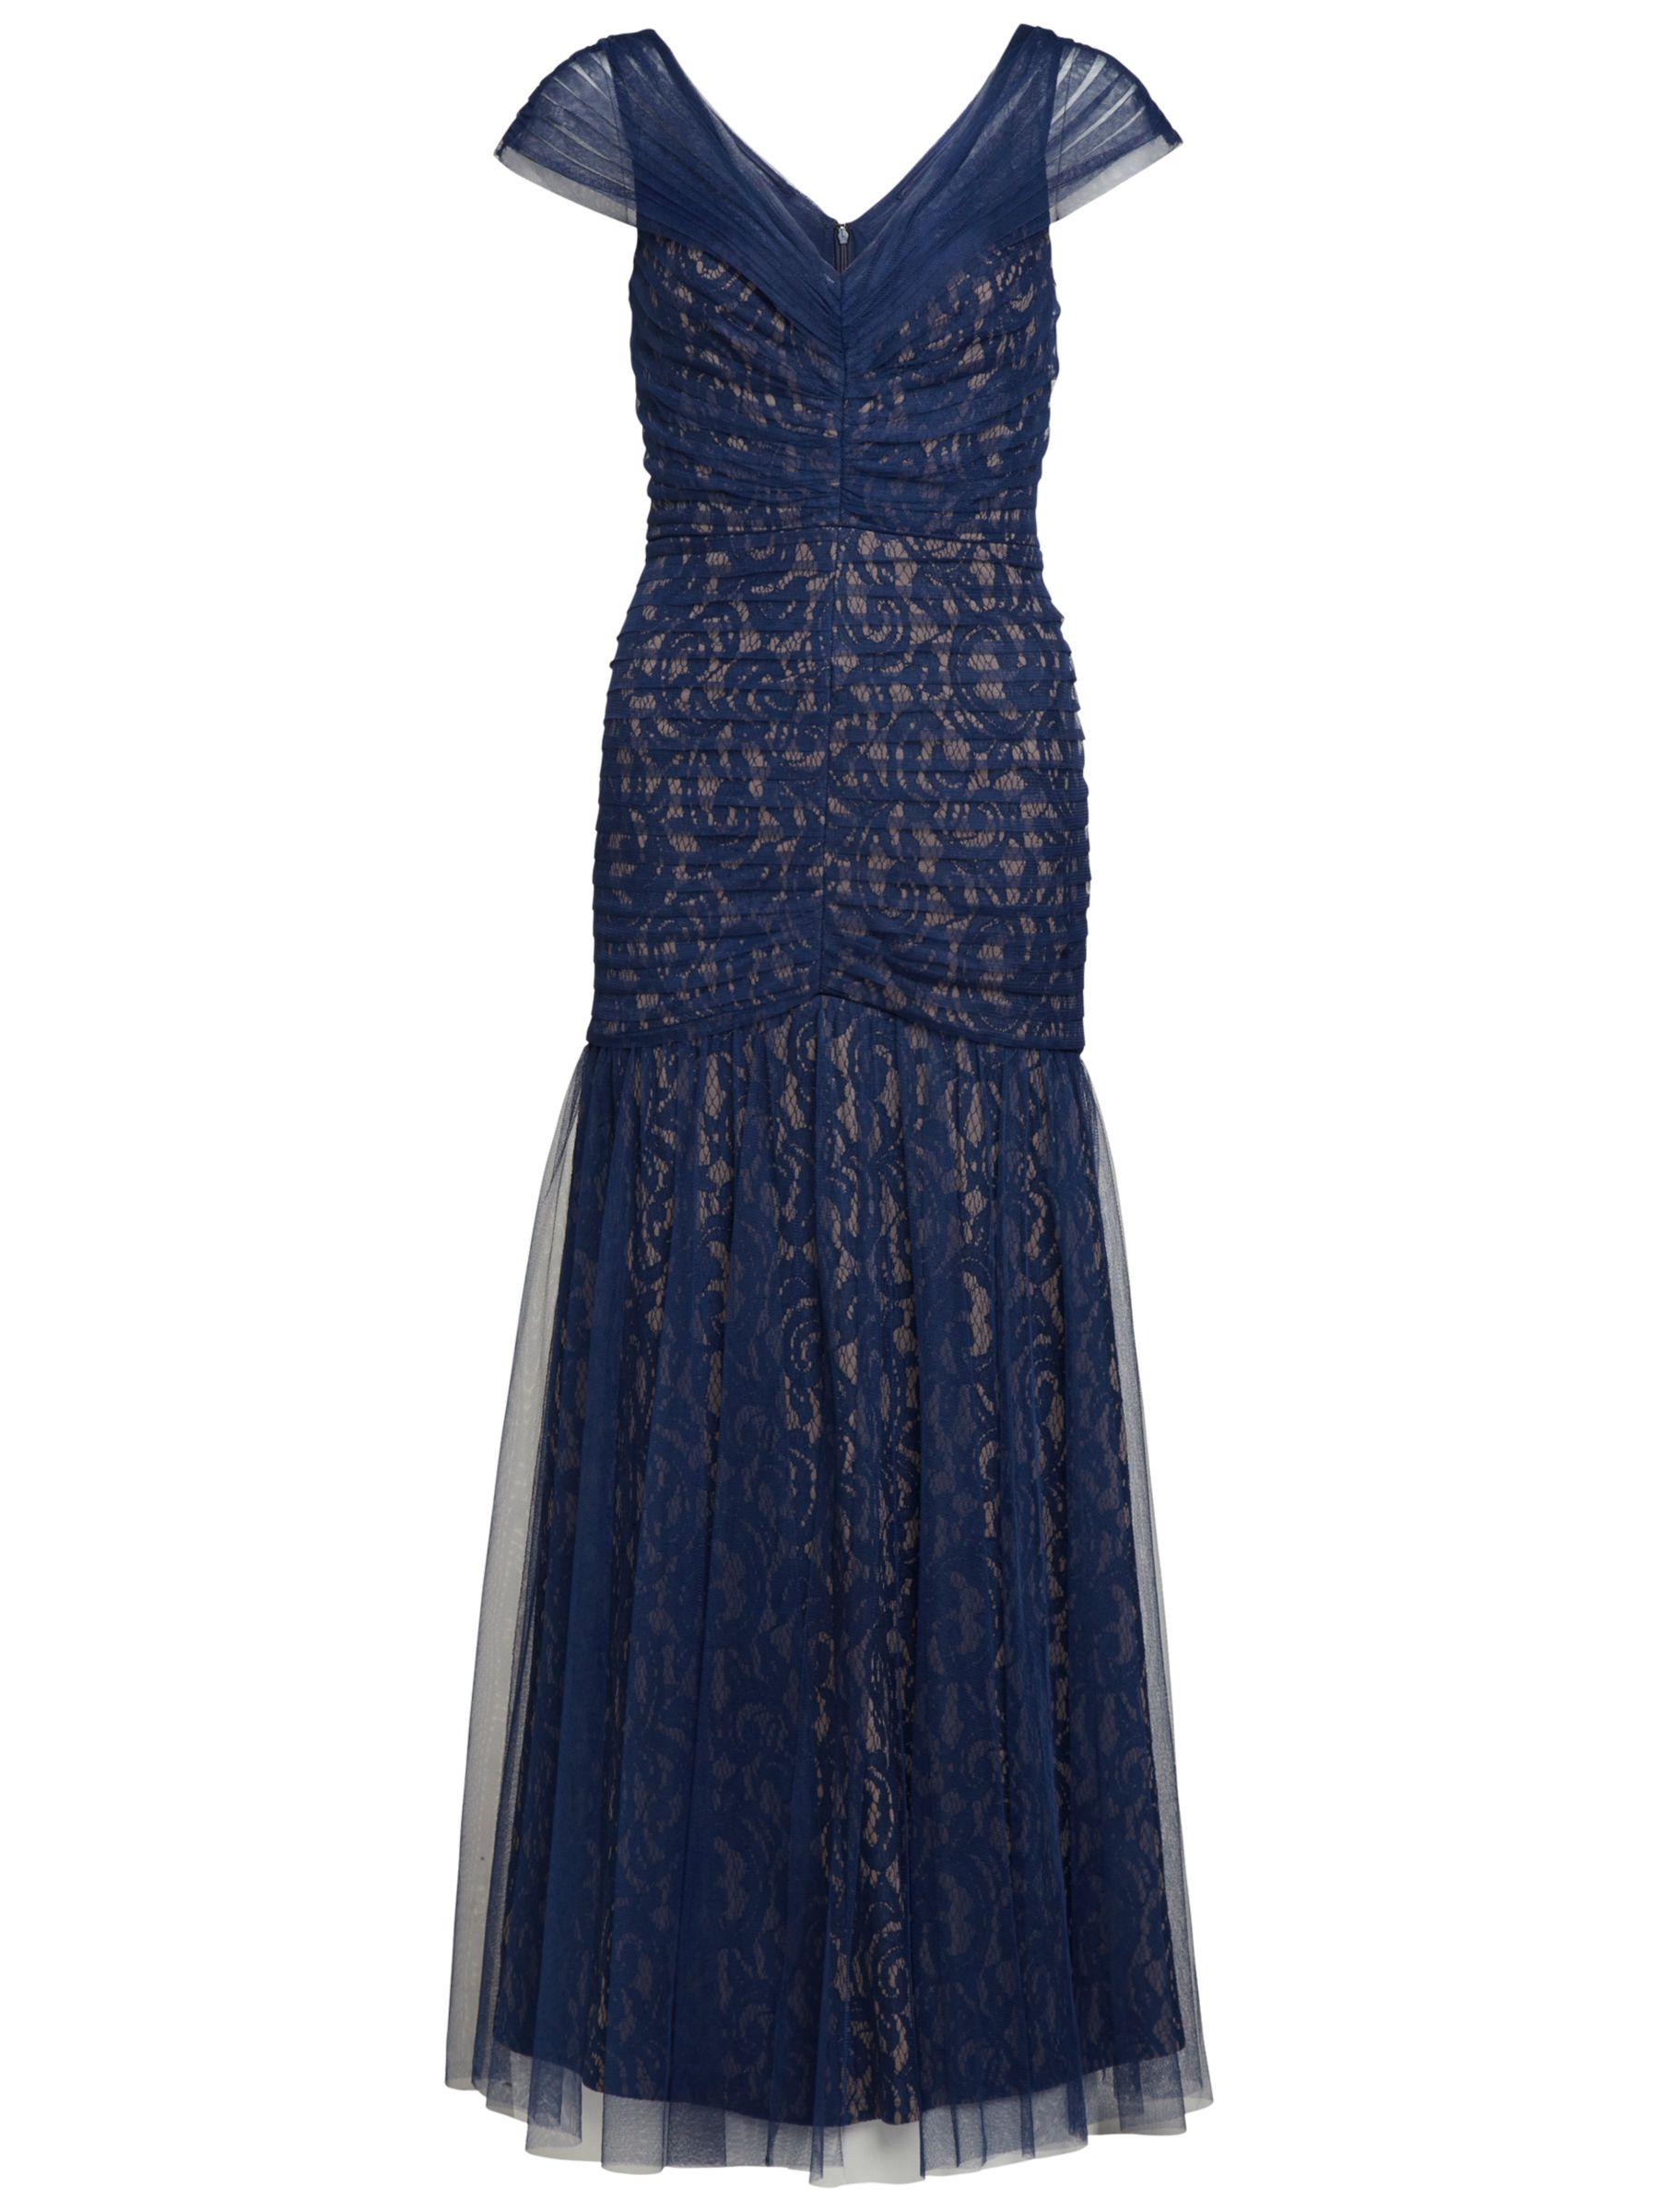 gina bacconi long mesh fishtail dress navy, gina, bacconi, long, mesh, fishtail, dress, navy, gina bacconi, 22|20|18|8|14|10|16|12, women, eveningwear, womens dresses, 1861317